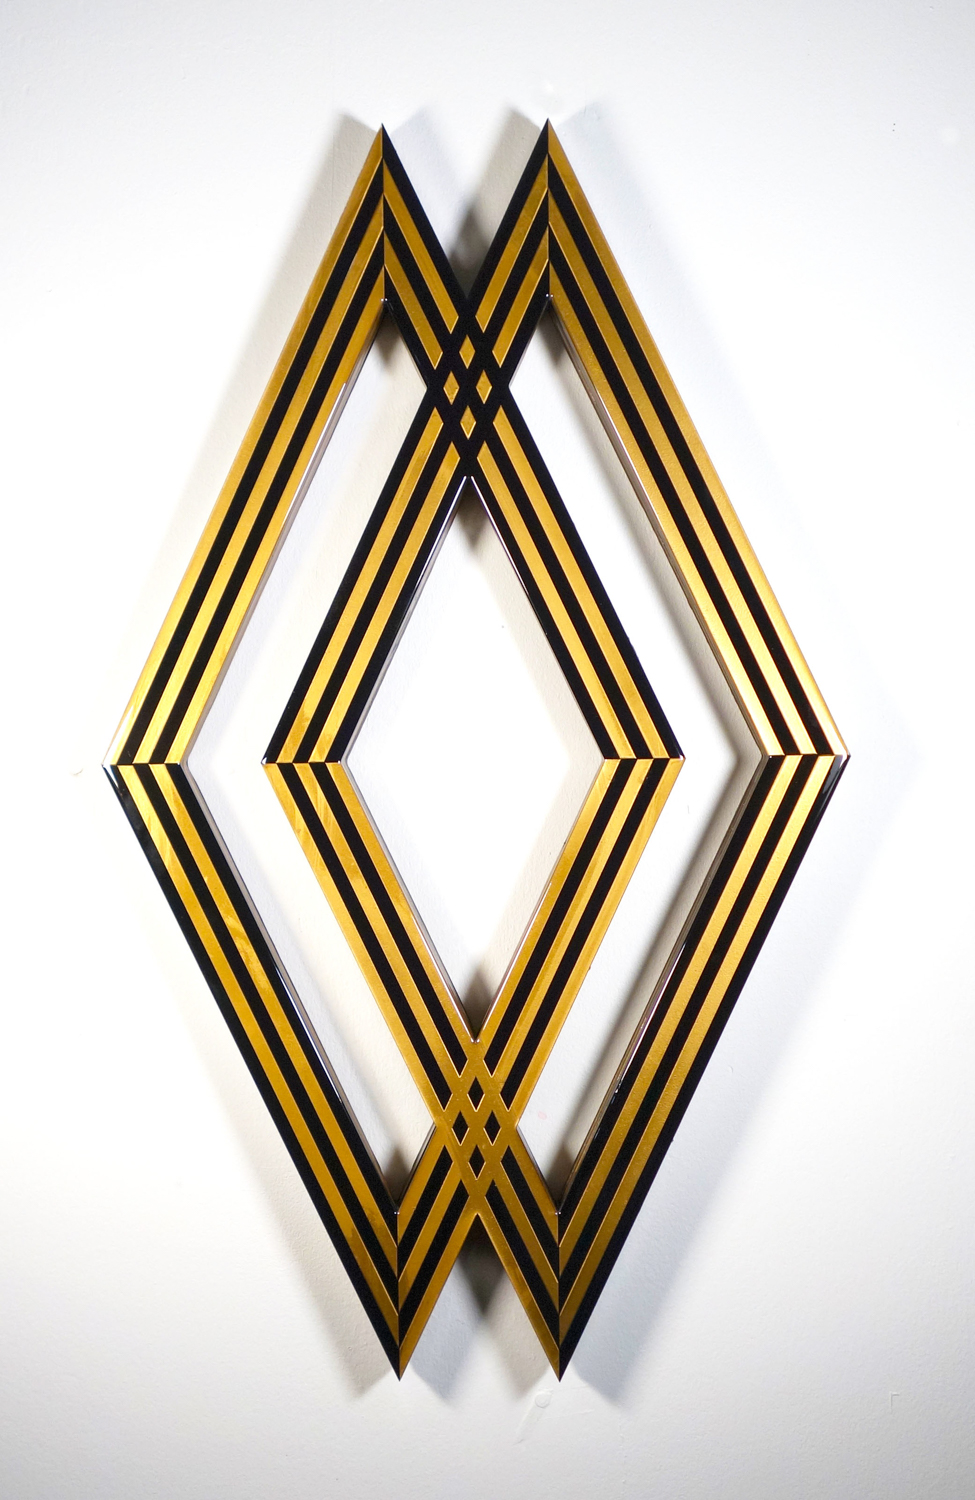 "Tavar Zawacki  DIAMOND INTERSECT - GOLD  (2018) Laser cut wood panels, acrylic paint, wood nails, Industrial UV protected resin 23"" x 38.5"" x 1.5""  INQUIRE"